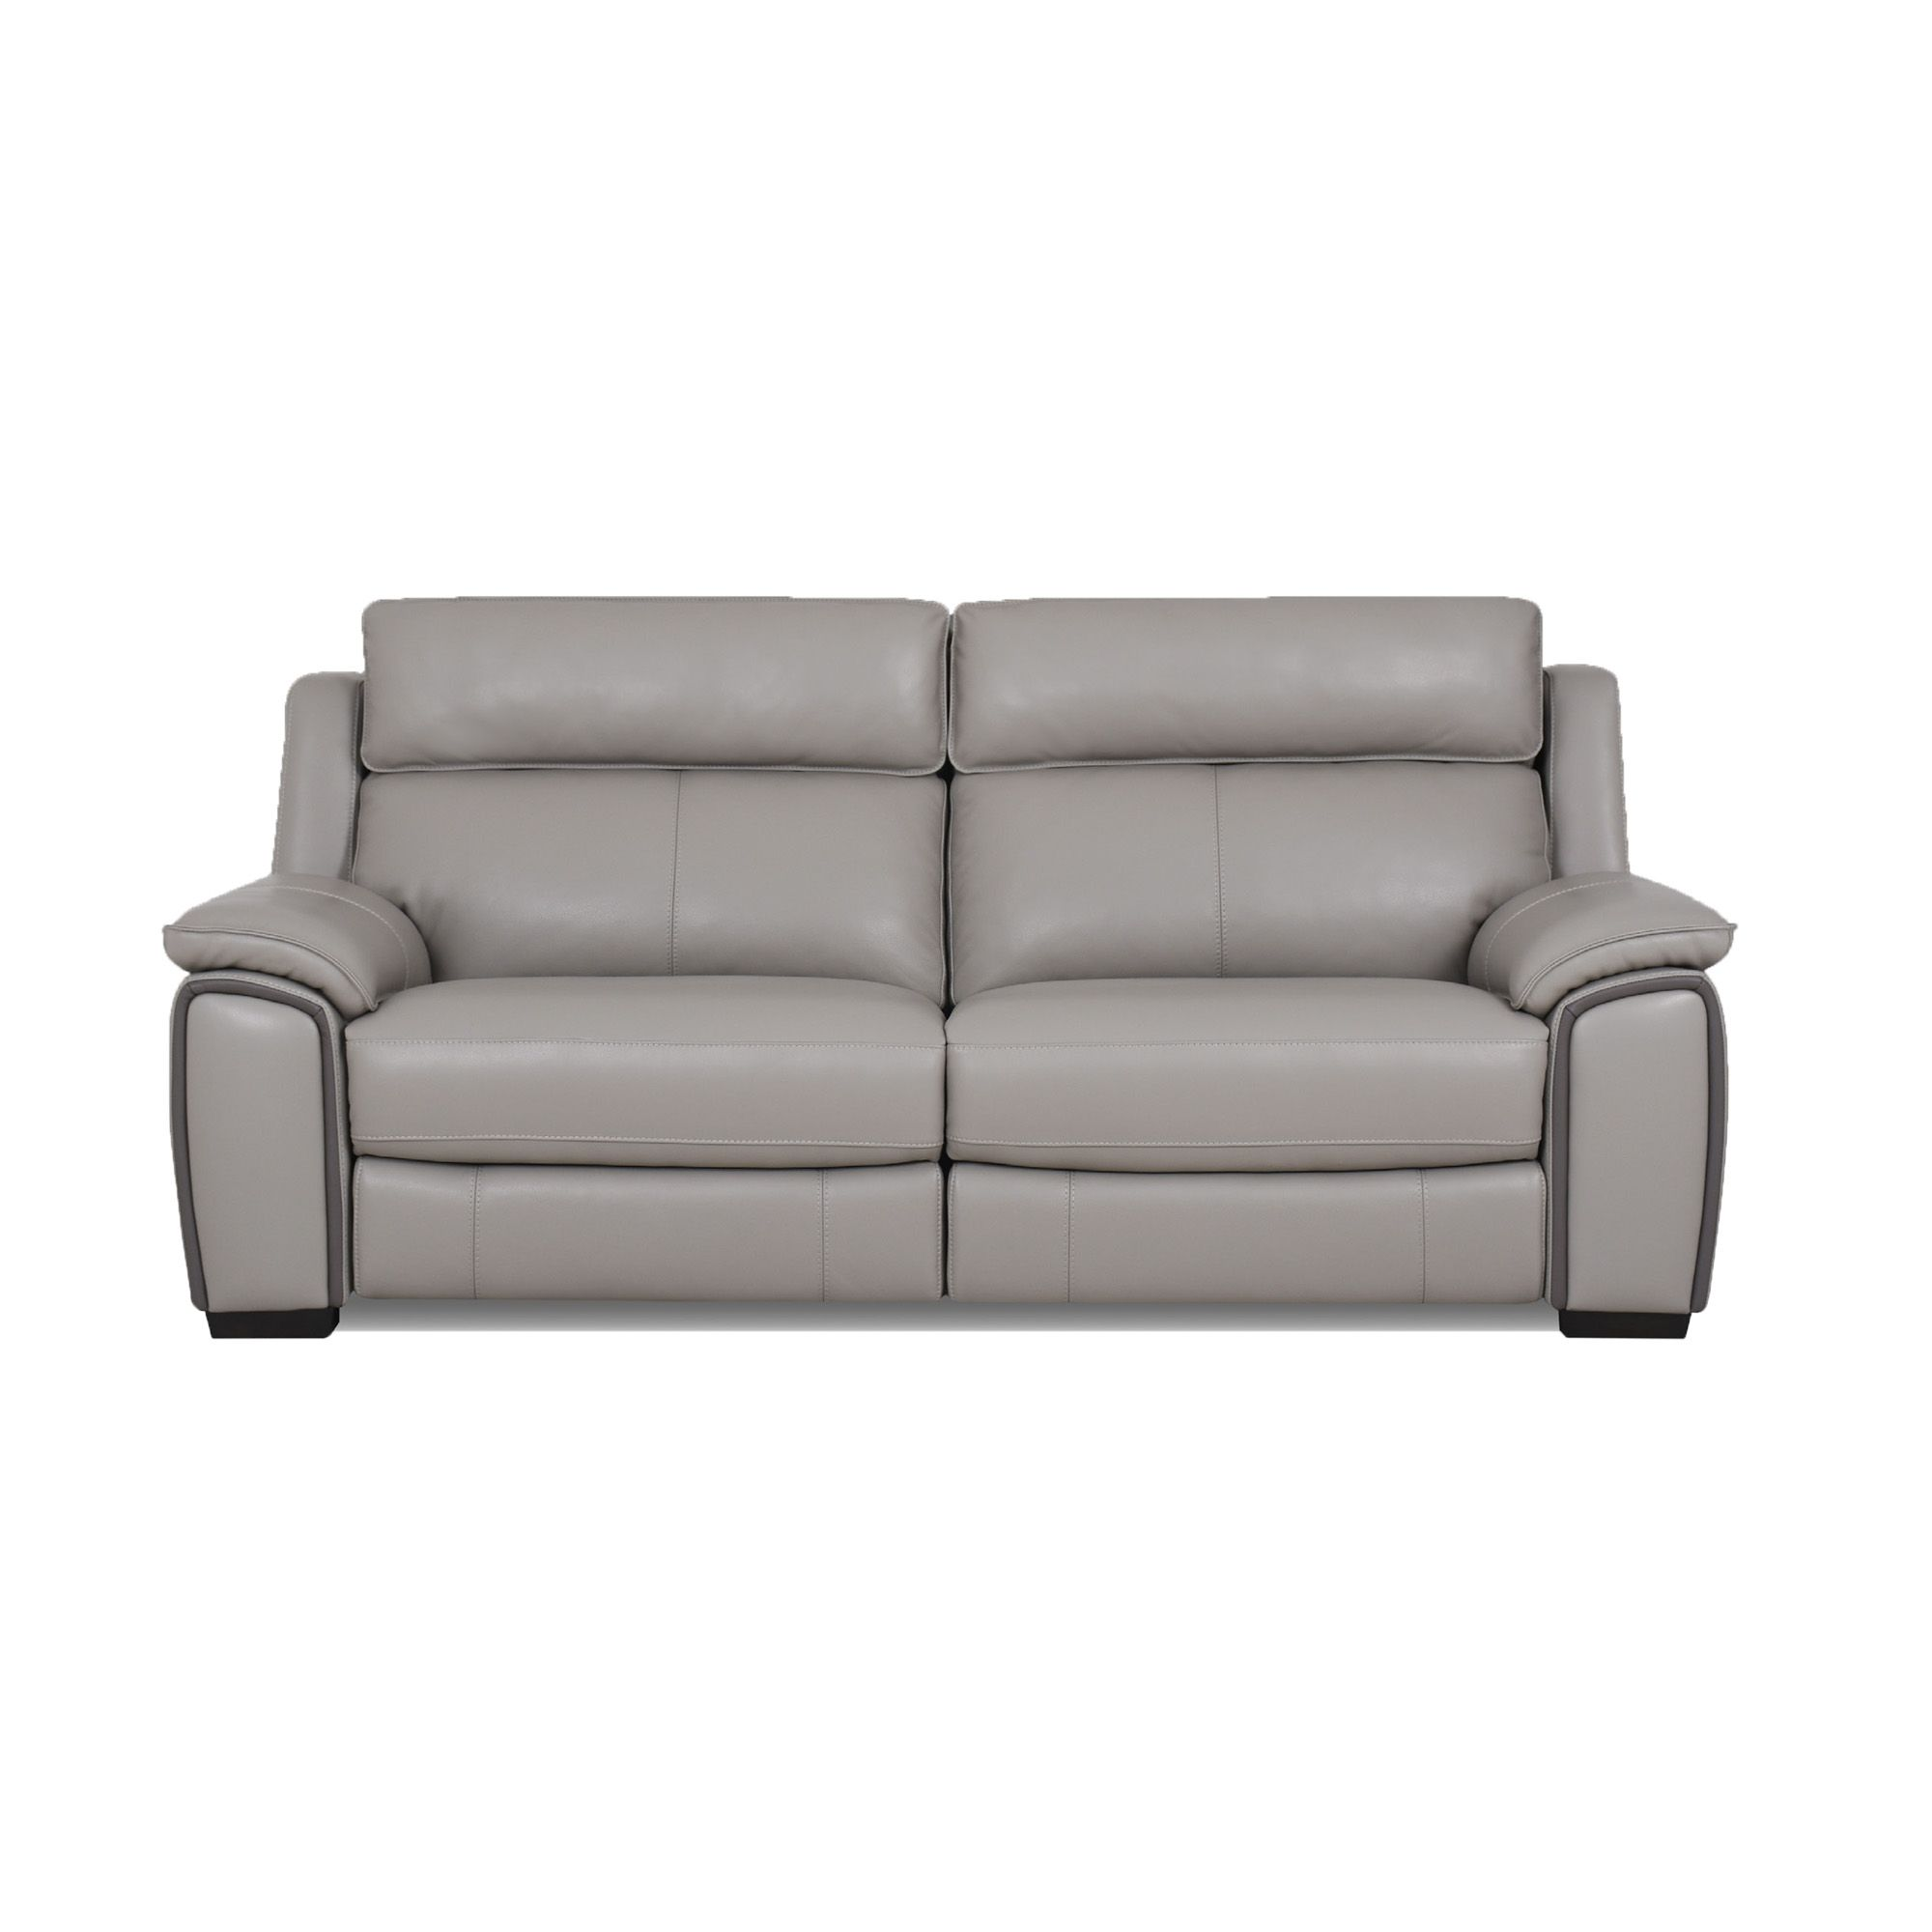 Minnesota 3 Seater Sofa Leather Category 20 3 3 5 Seater Sofas Meubles